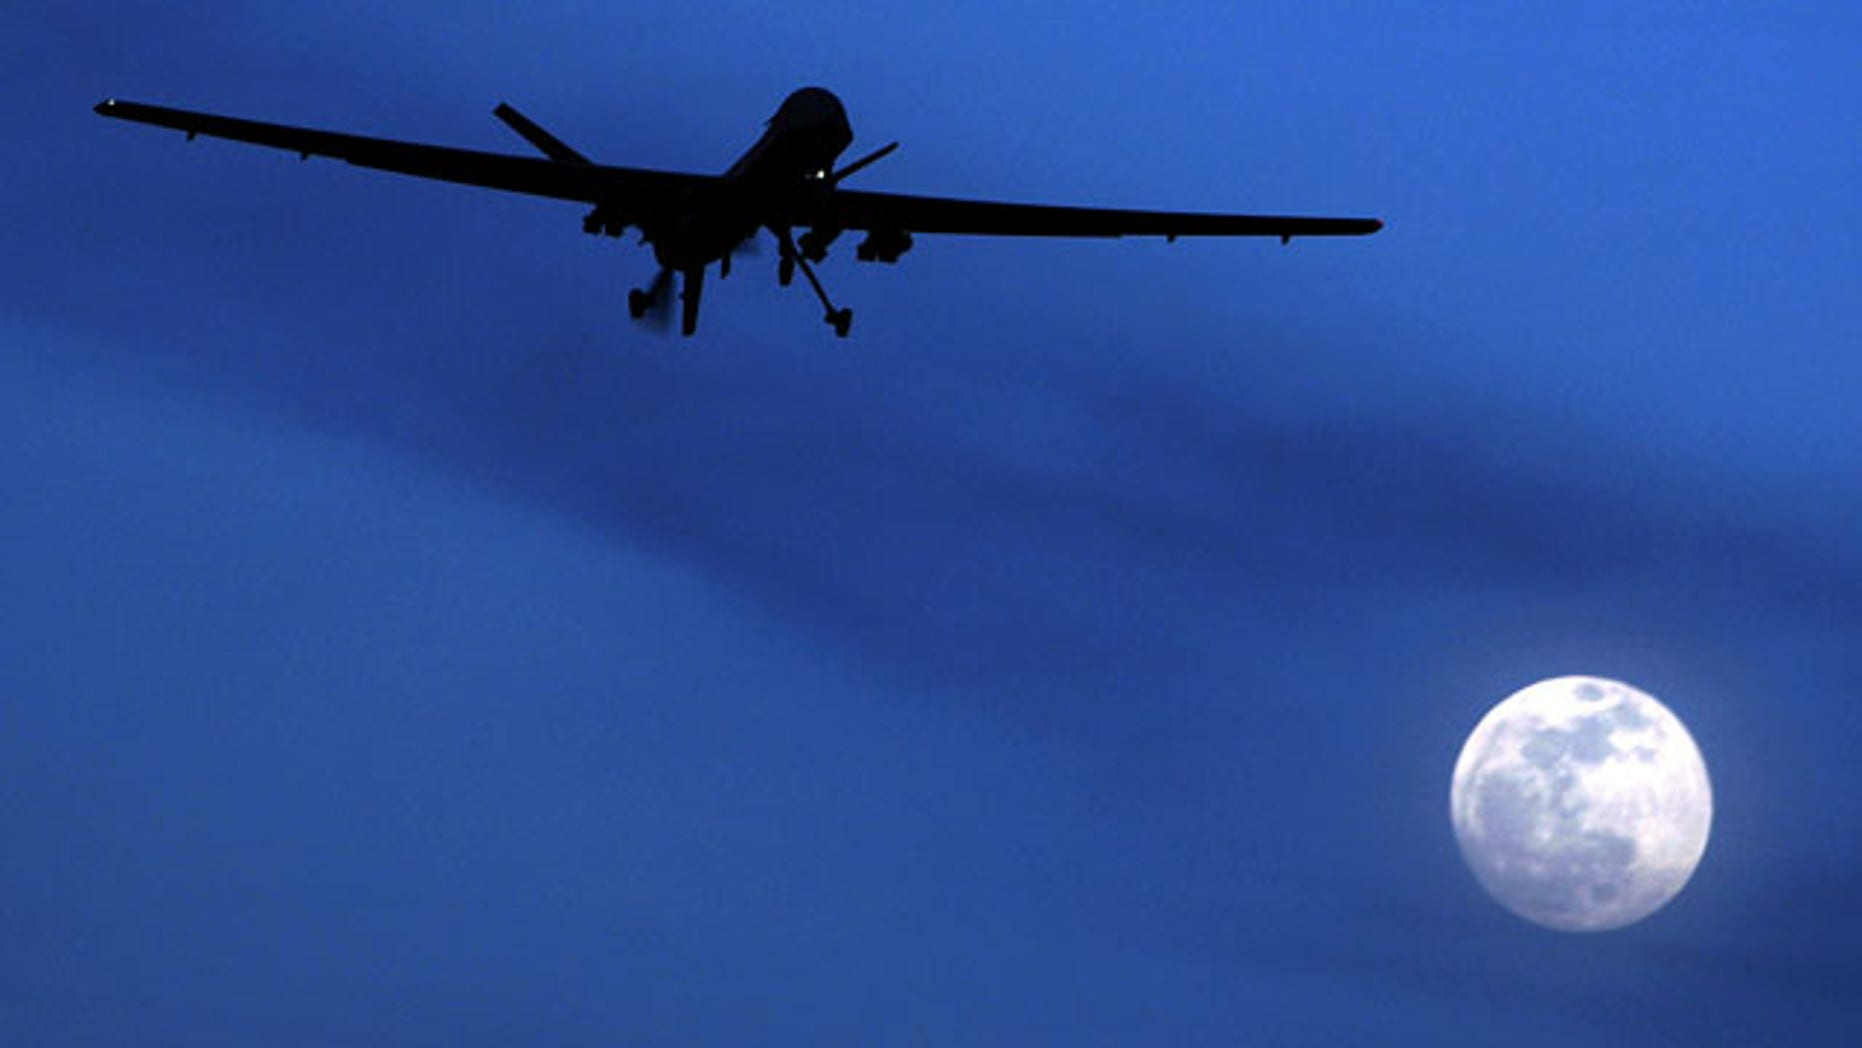 FILE - In this Jan. 31, 2010 file photo, an unmanned U.S. Predator drone flies over Kandahar Air Field, southern Afghanistan, on a moon-lit night. The Pakistani government said Wednesday, Oct. 30, 2013, that 3 percent of the people killed in U.S. drone strikes in the country since 2008 were civilians, a surprisingly low figure given past official calculations and estimates from independent organizations. (AP Photo/Kirsty Wigglesworth, File)